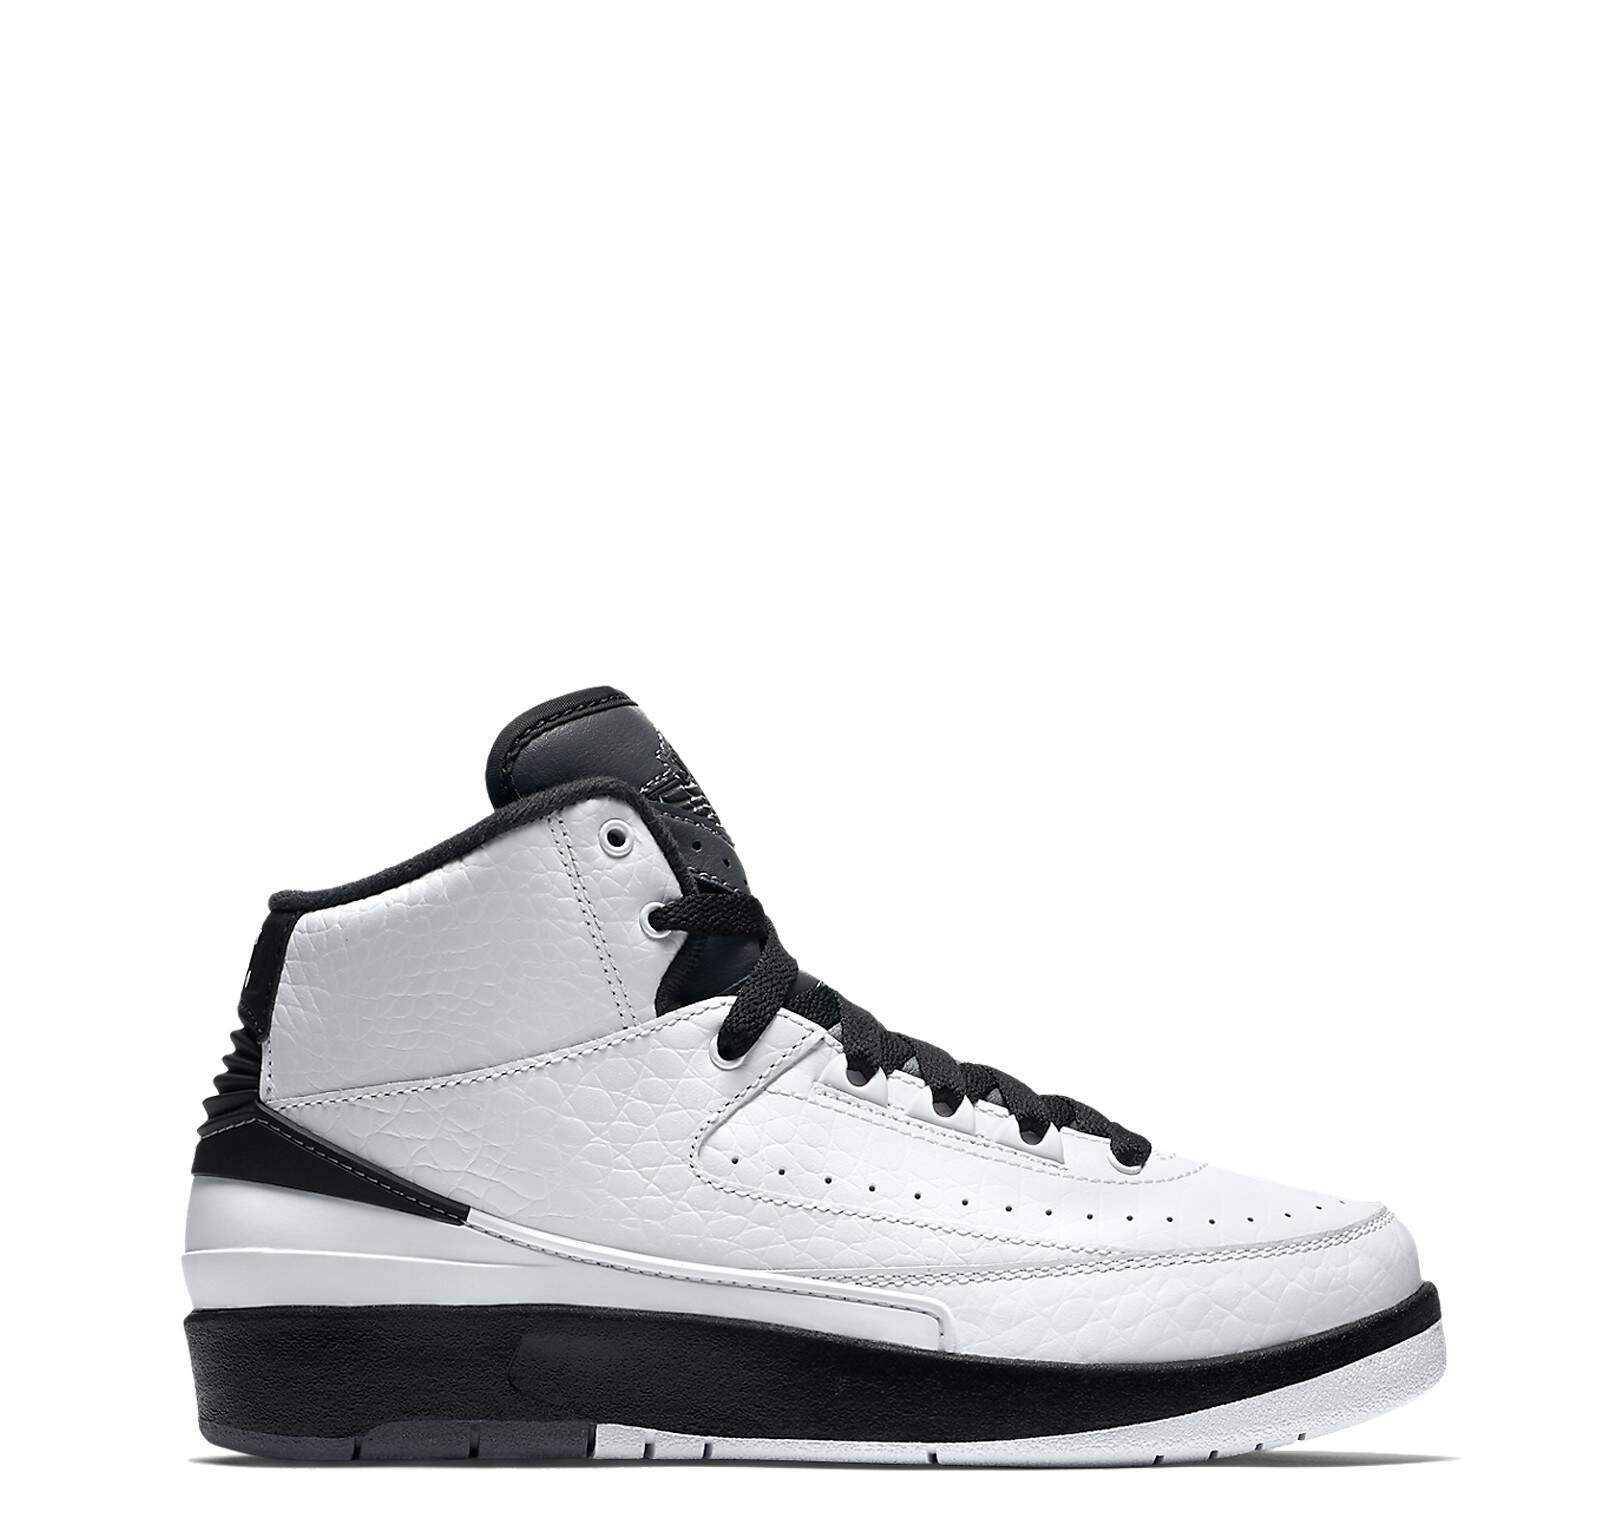 Jordan Retro 2 White / Black / Dark Grey Infantil